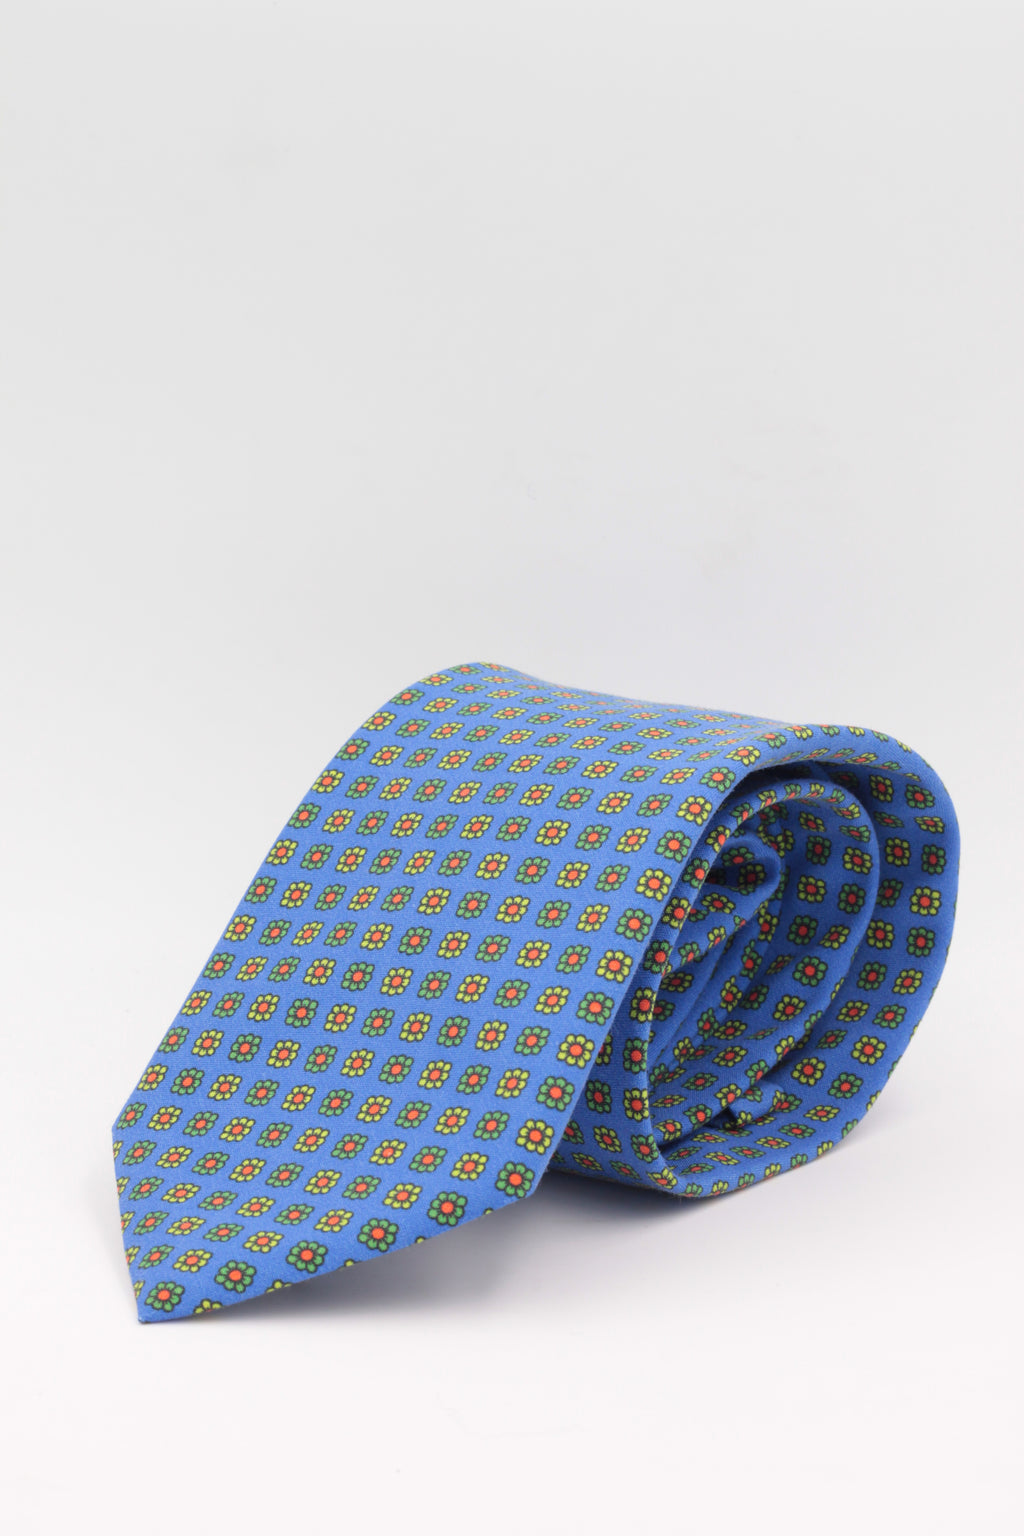 Light blue, yellow and green flower print tie